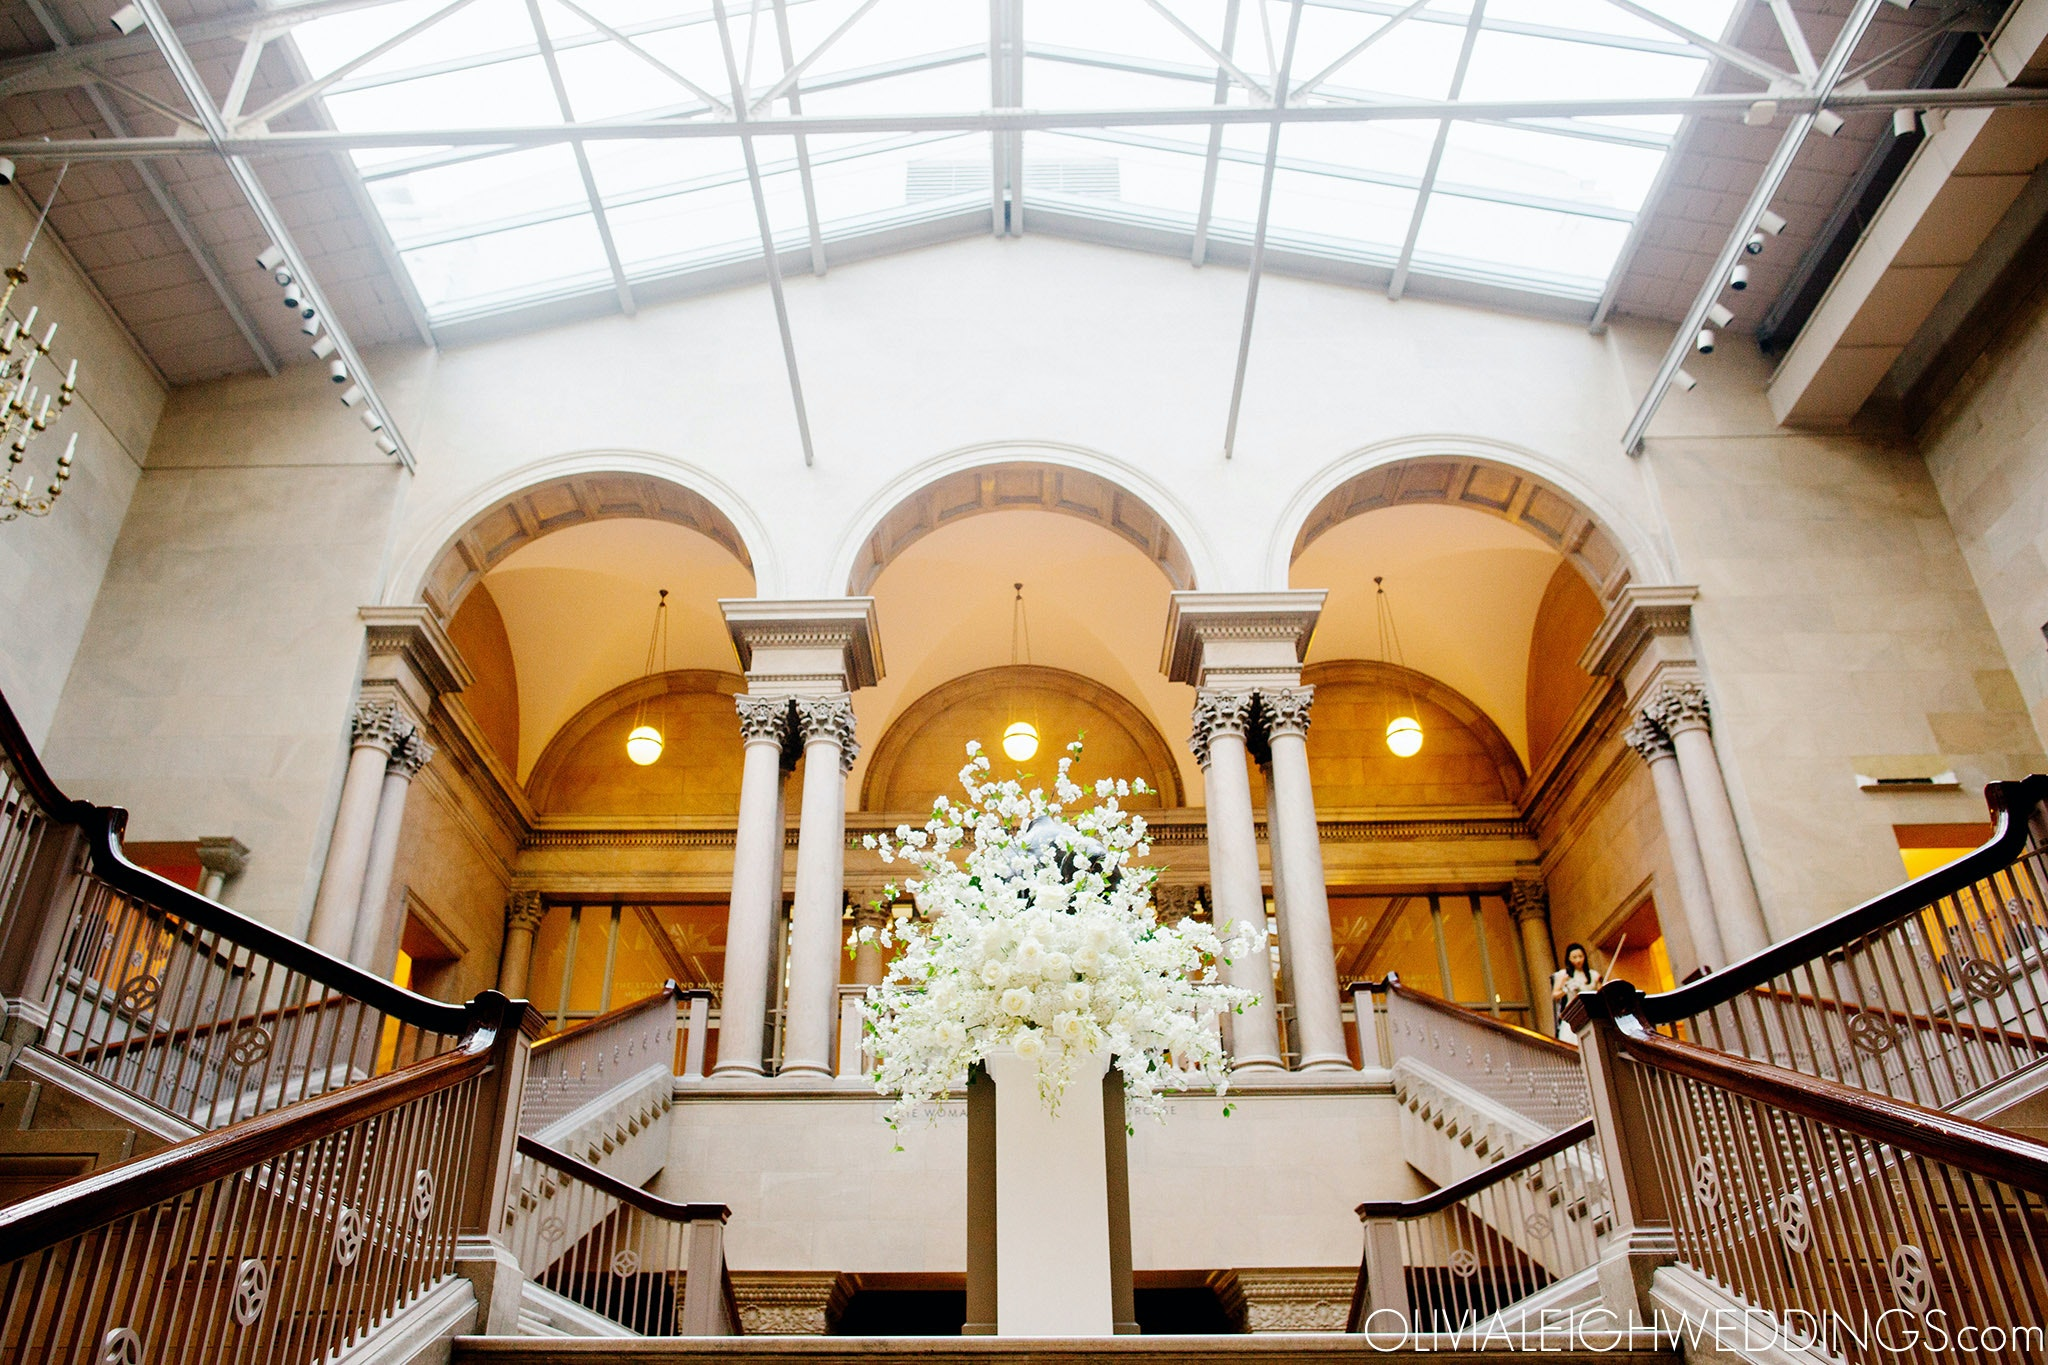 A large vase of flowers sites in the middle of a grandstaircase